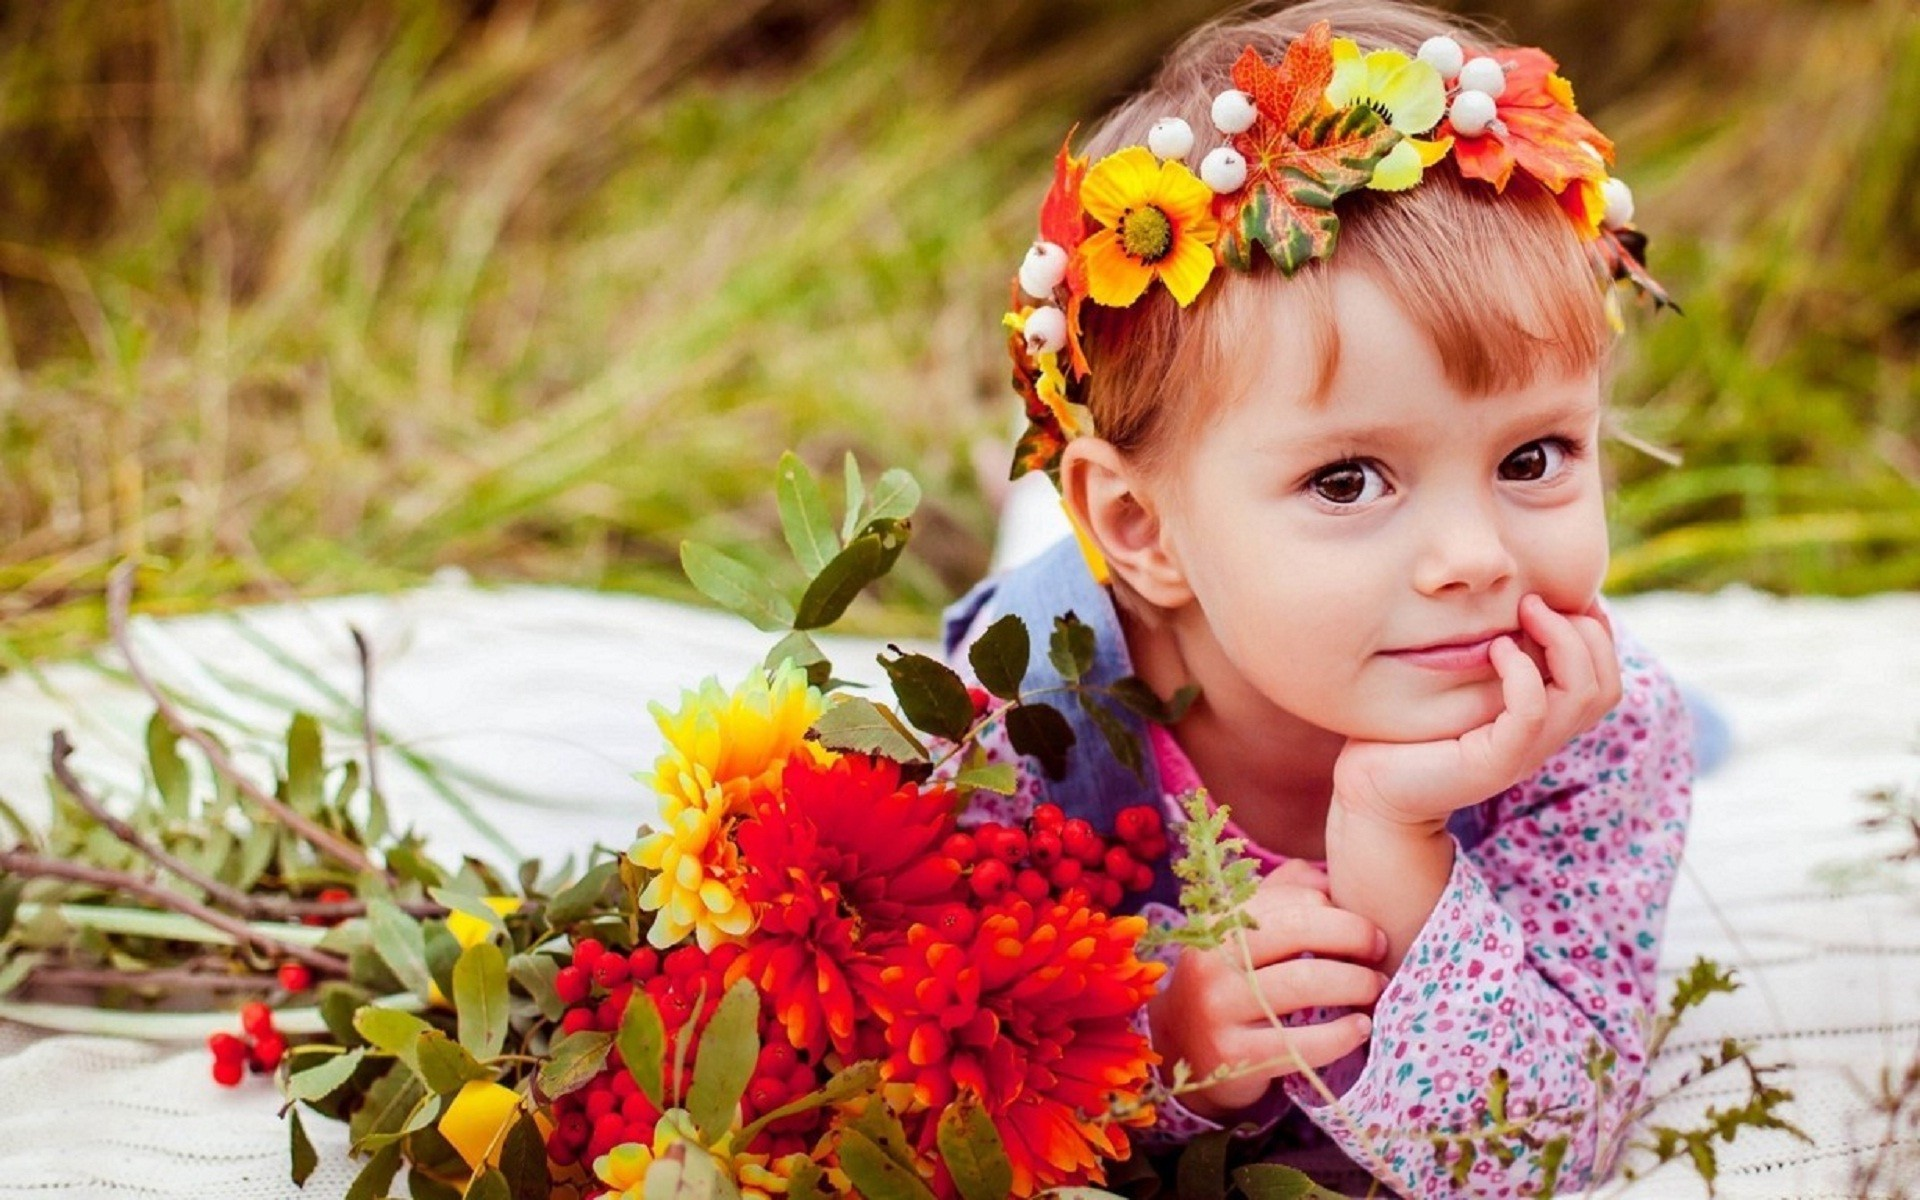 Free Download Hd Beautiful Desktop Images 1920 1200 Download Cute Baby Pictures Hd 1920x1200 Wallpaper Teahub Io